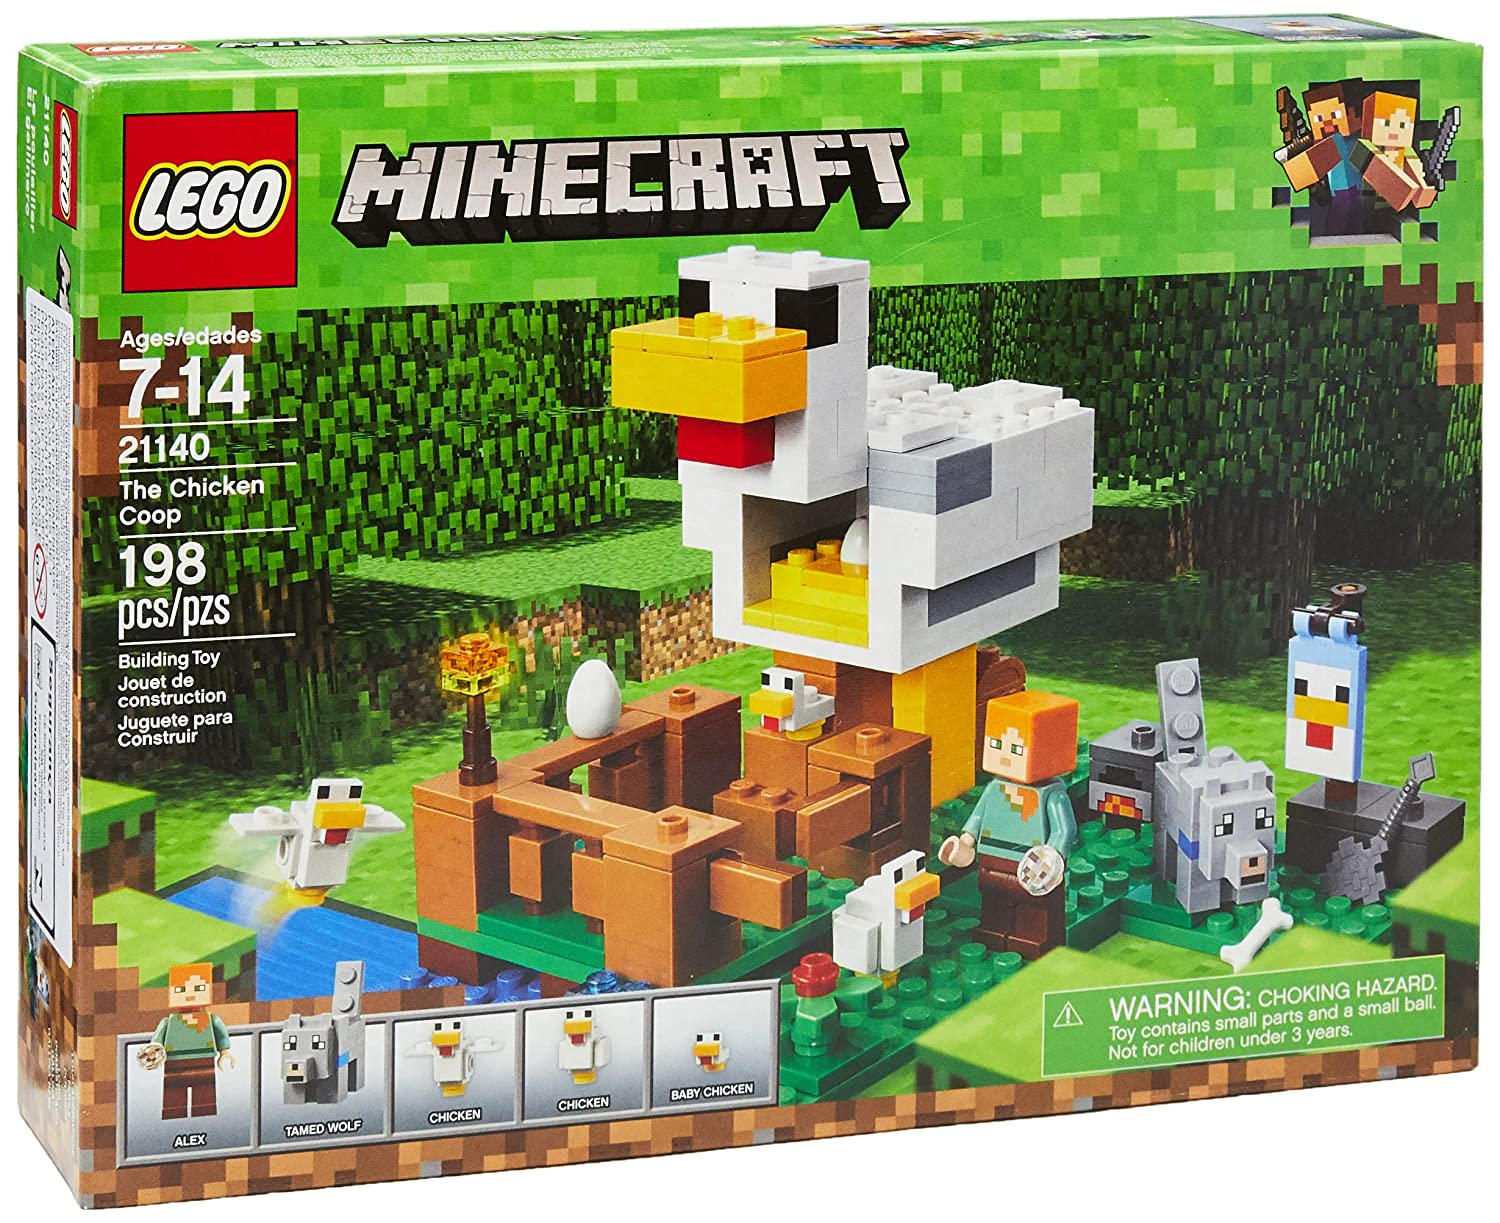 LEGO Minecraft The Chicken Coop 21140 Building Kit (198 Piece)